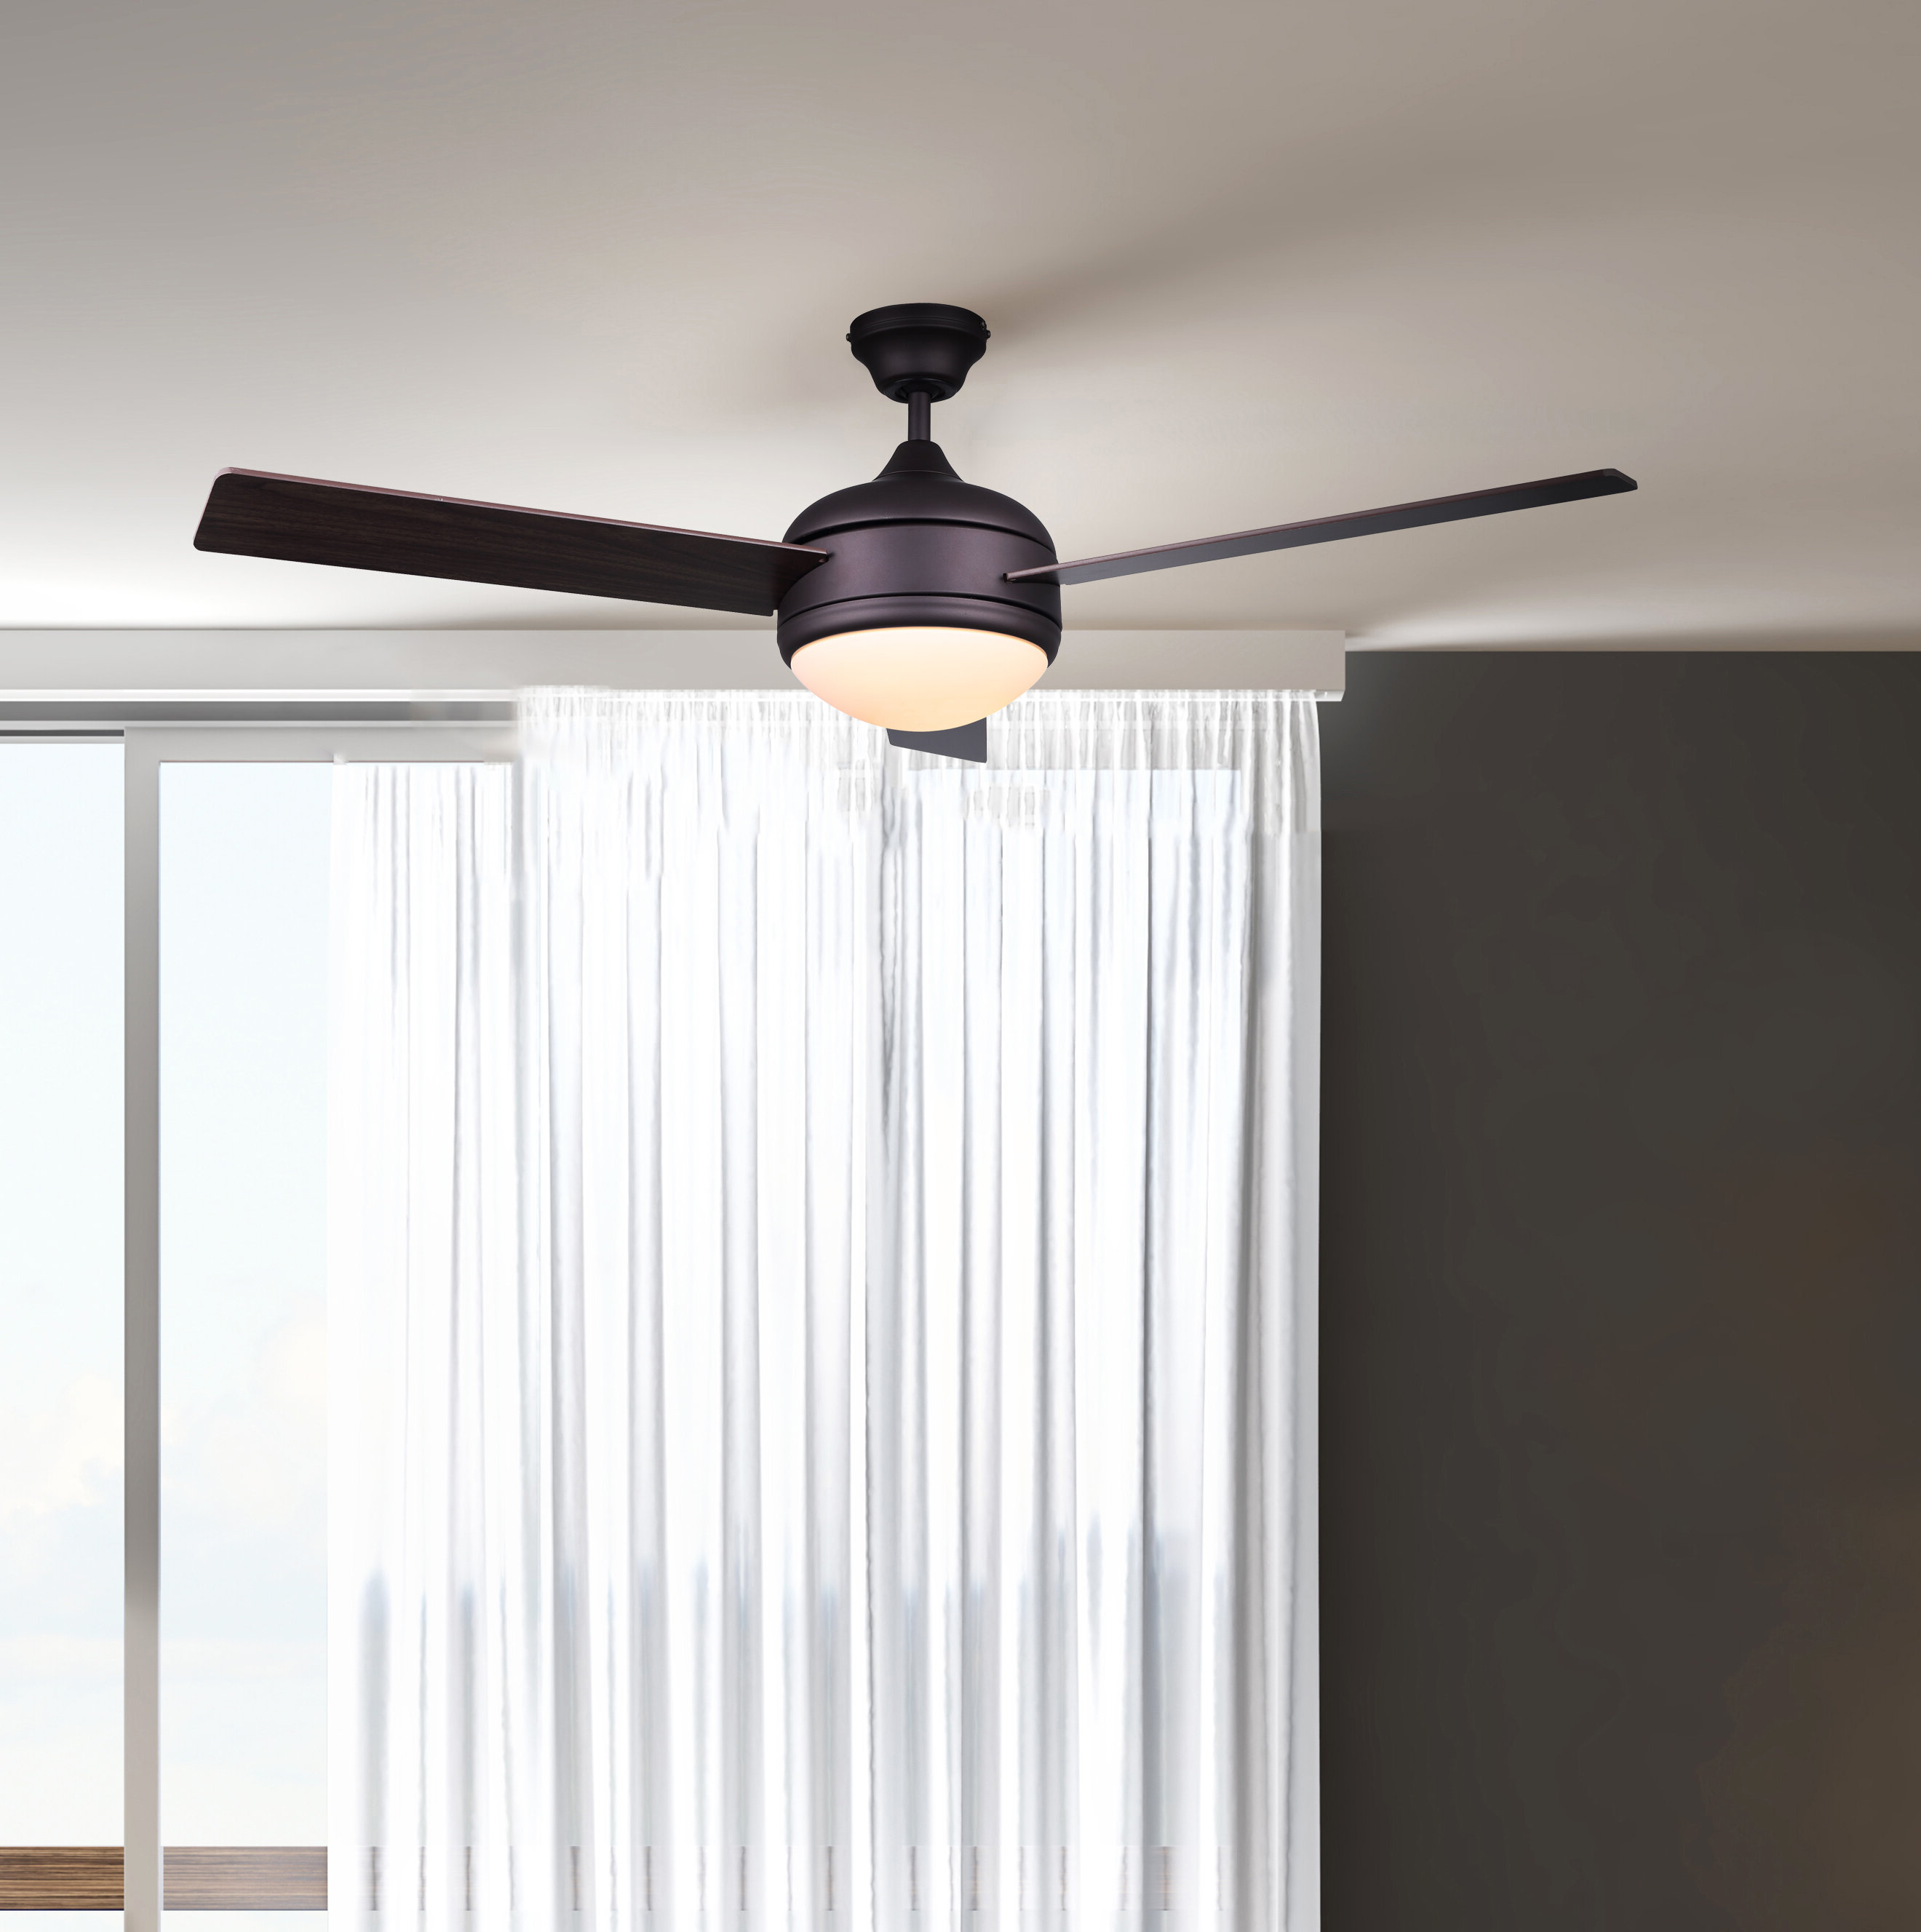 "Most Recent 48"" Kandi 3 Blade Ceiling Fan With Remote, Light Kit Included Within The Kensington 5 Blade Ceiling Fans (View 19 of 20)"